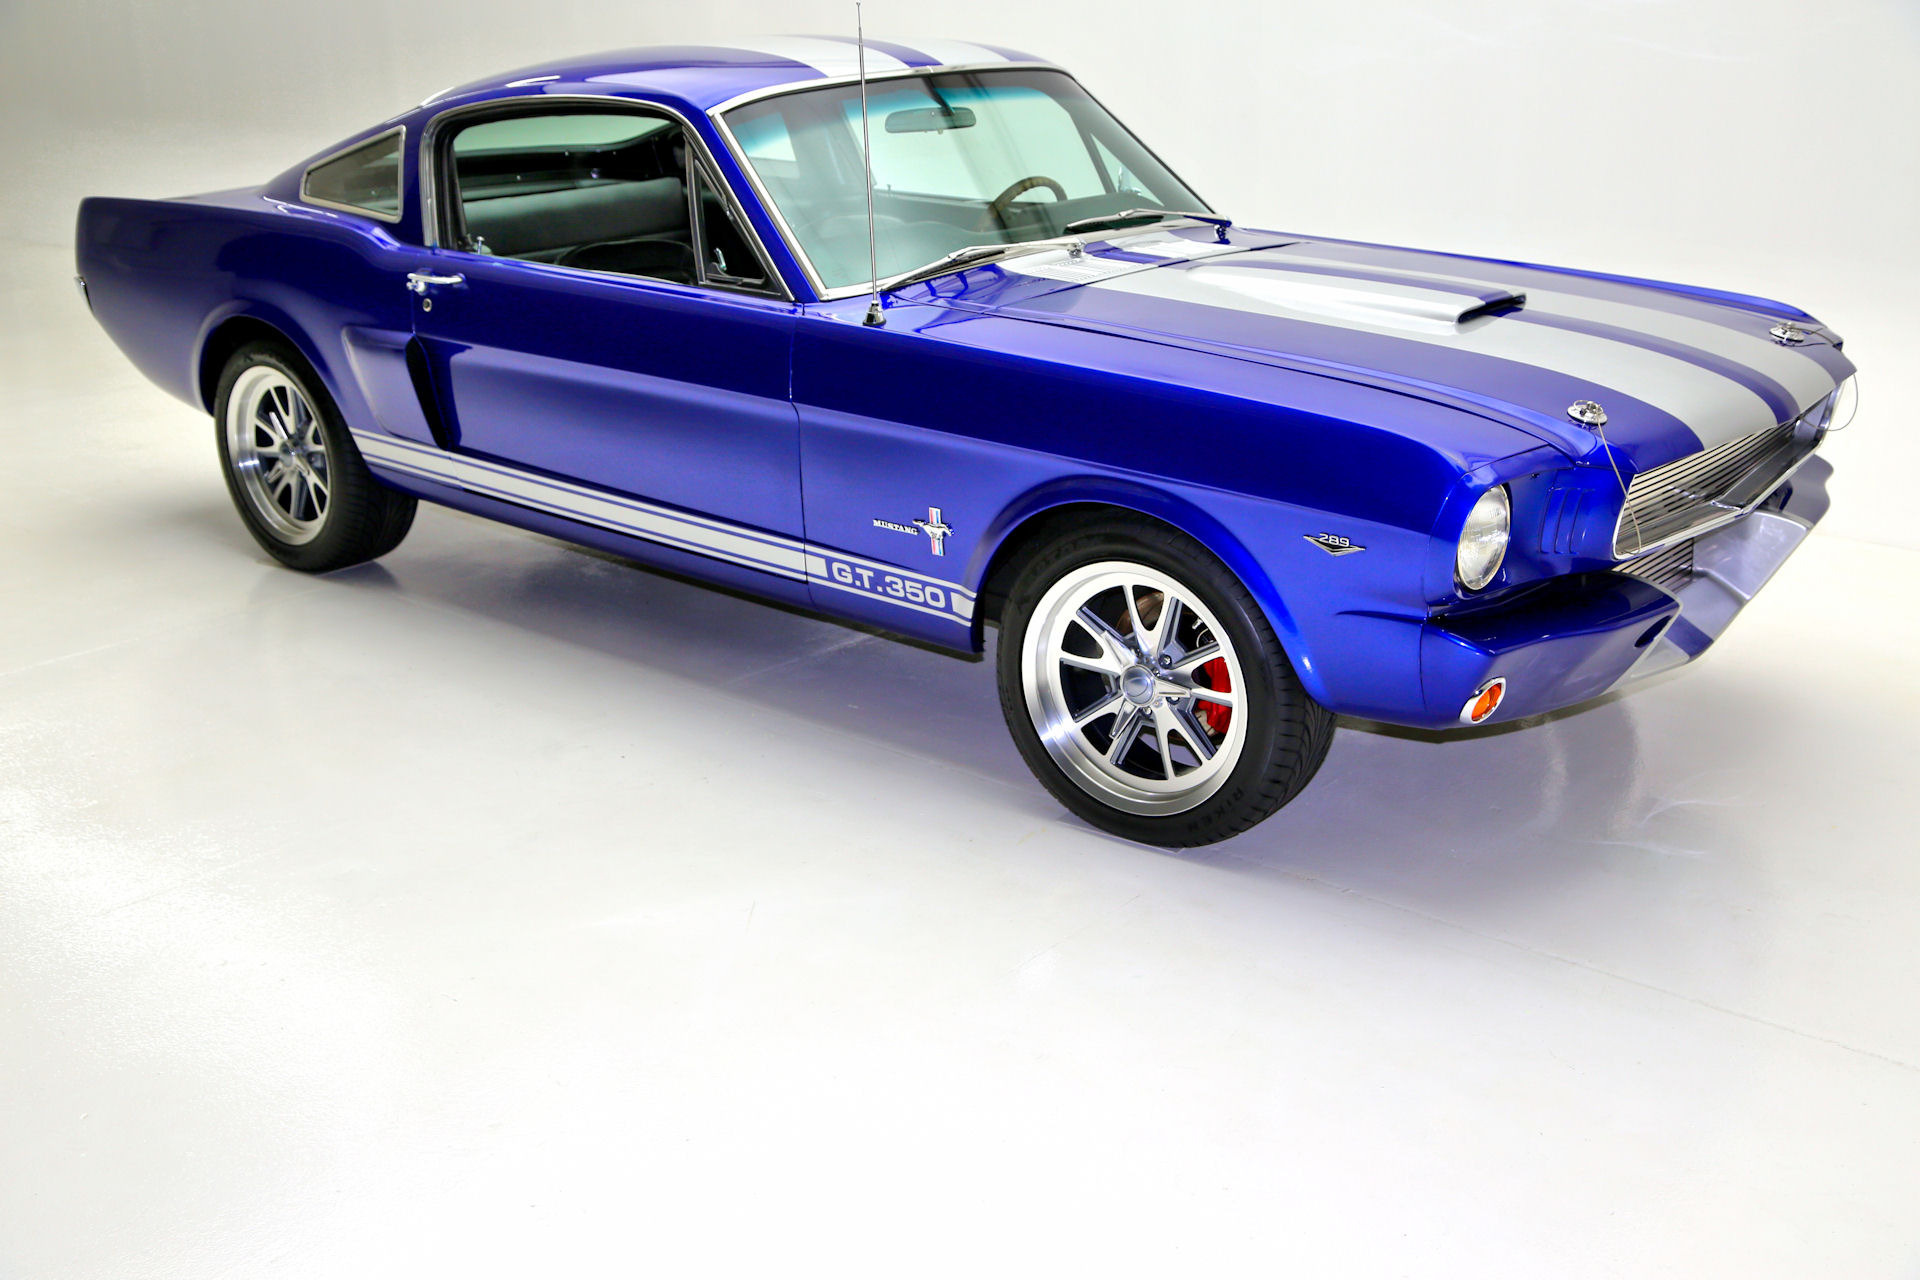 1965 Ford Mustang Electric Blue GT350 options   American Dream     1965 Ford Mustang Electric Blue GT350 options